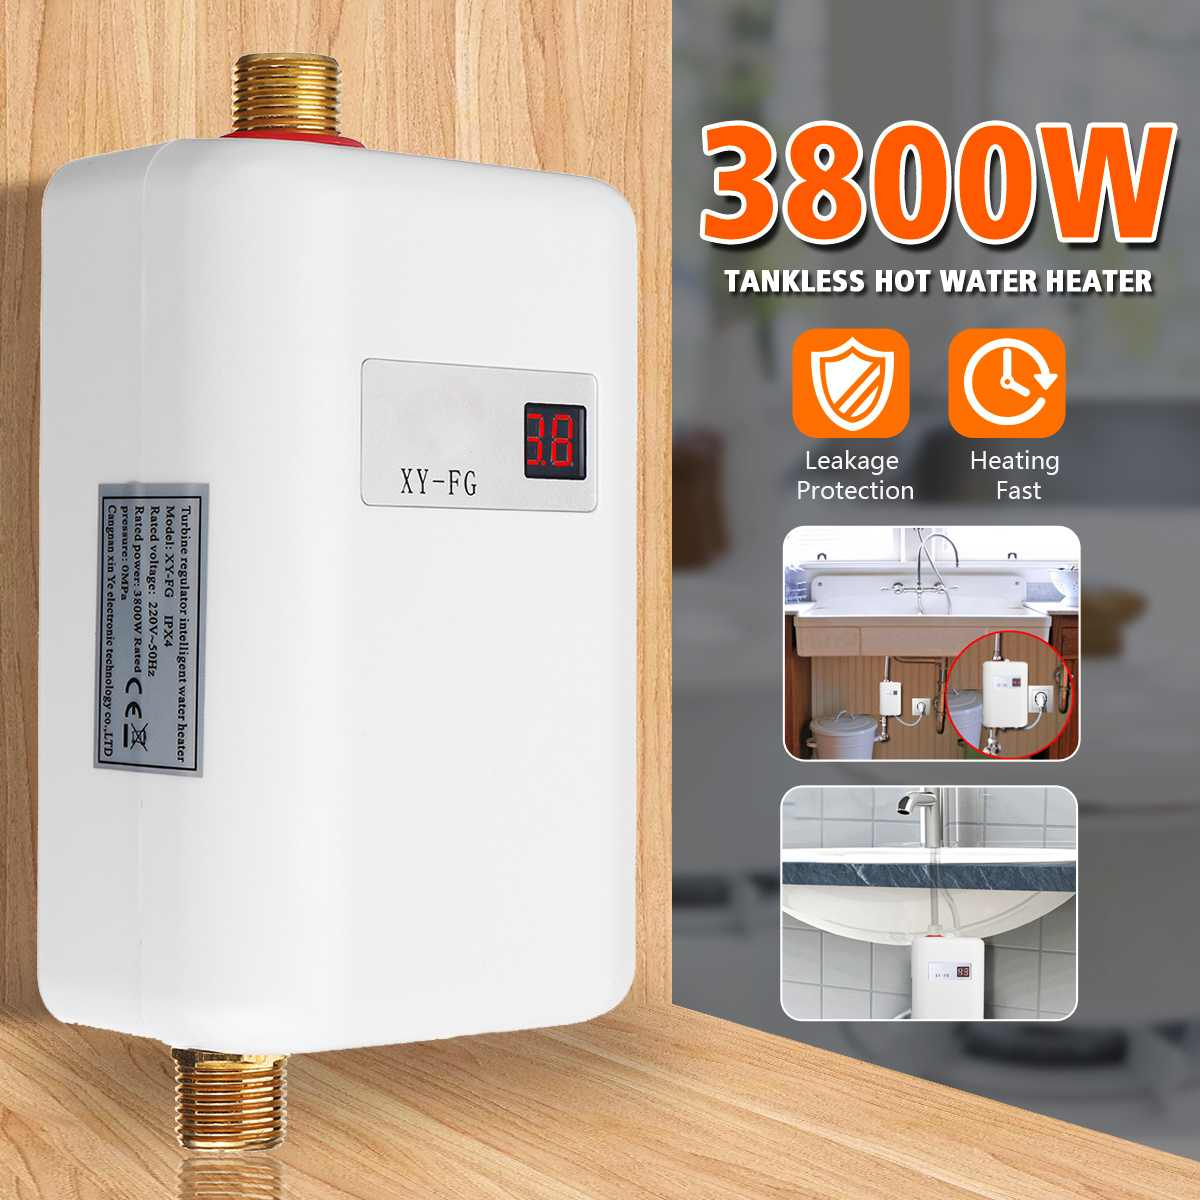 3800W Electric Water Heater Instant Tankless Water Heater 220V 3.8KW Temperature Display Heating Shower Universal(China)